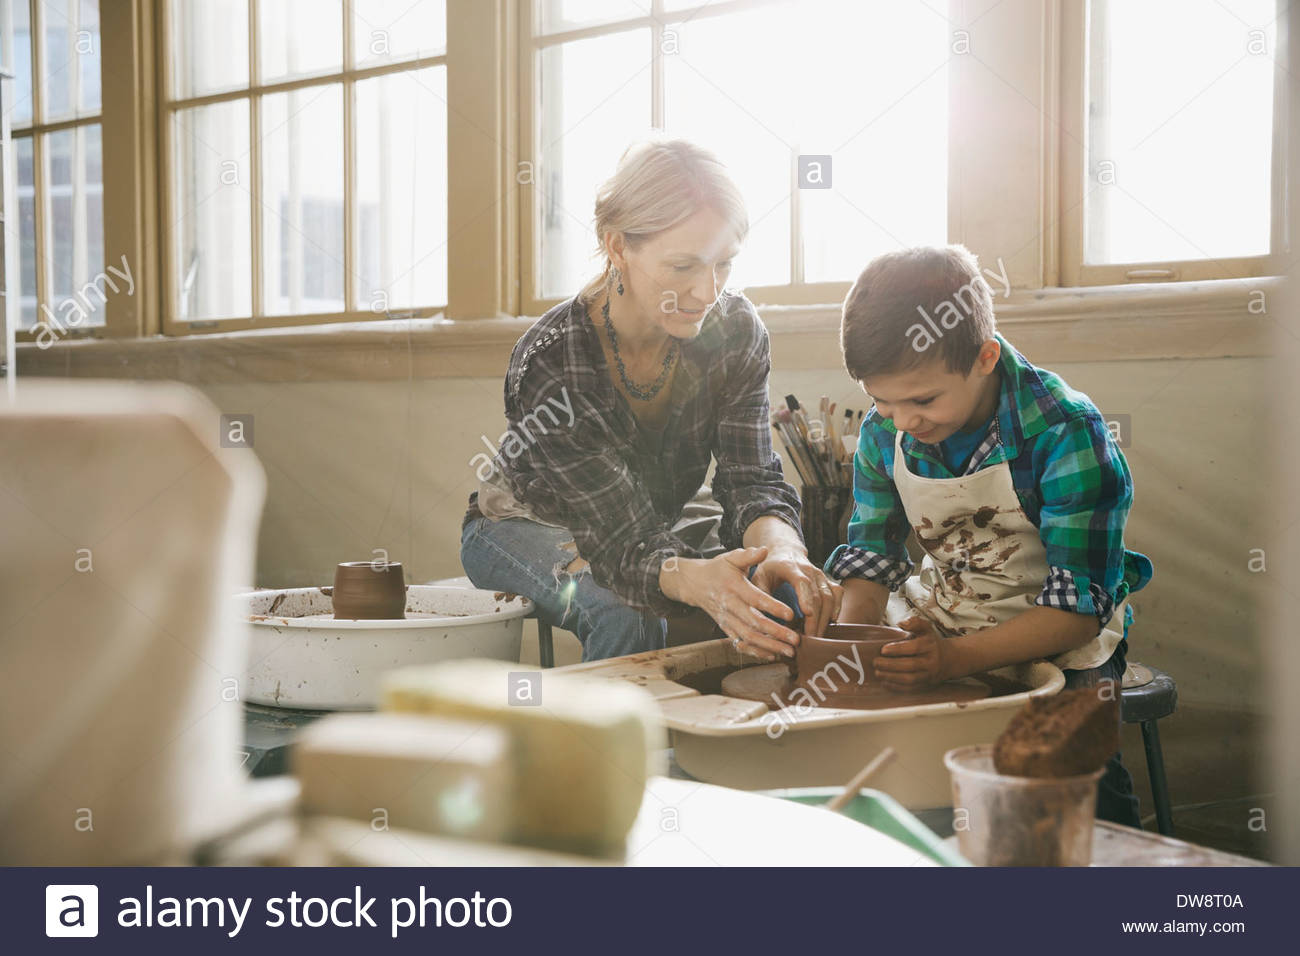 Female teacher assisting boy in pottery class - Stock Image